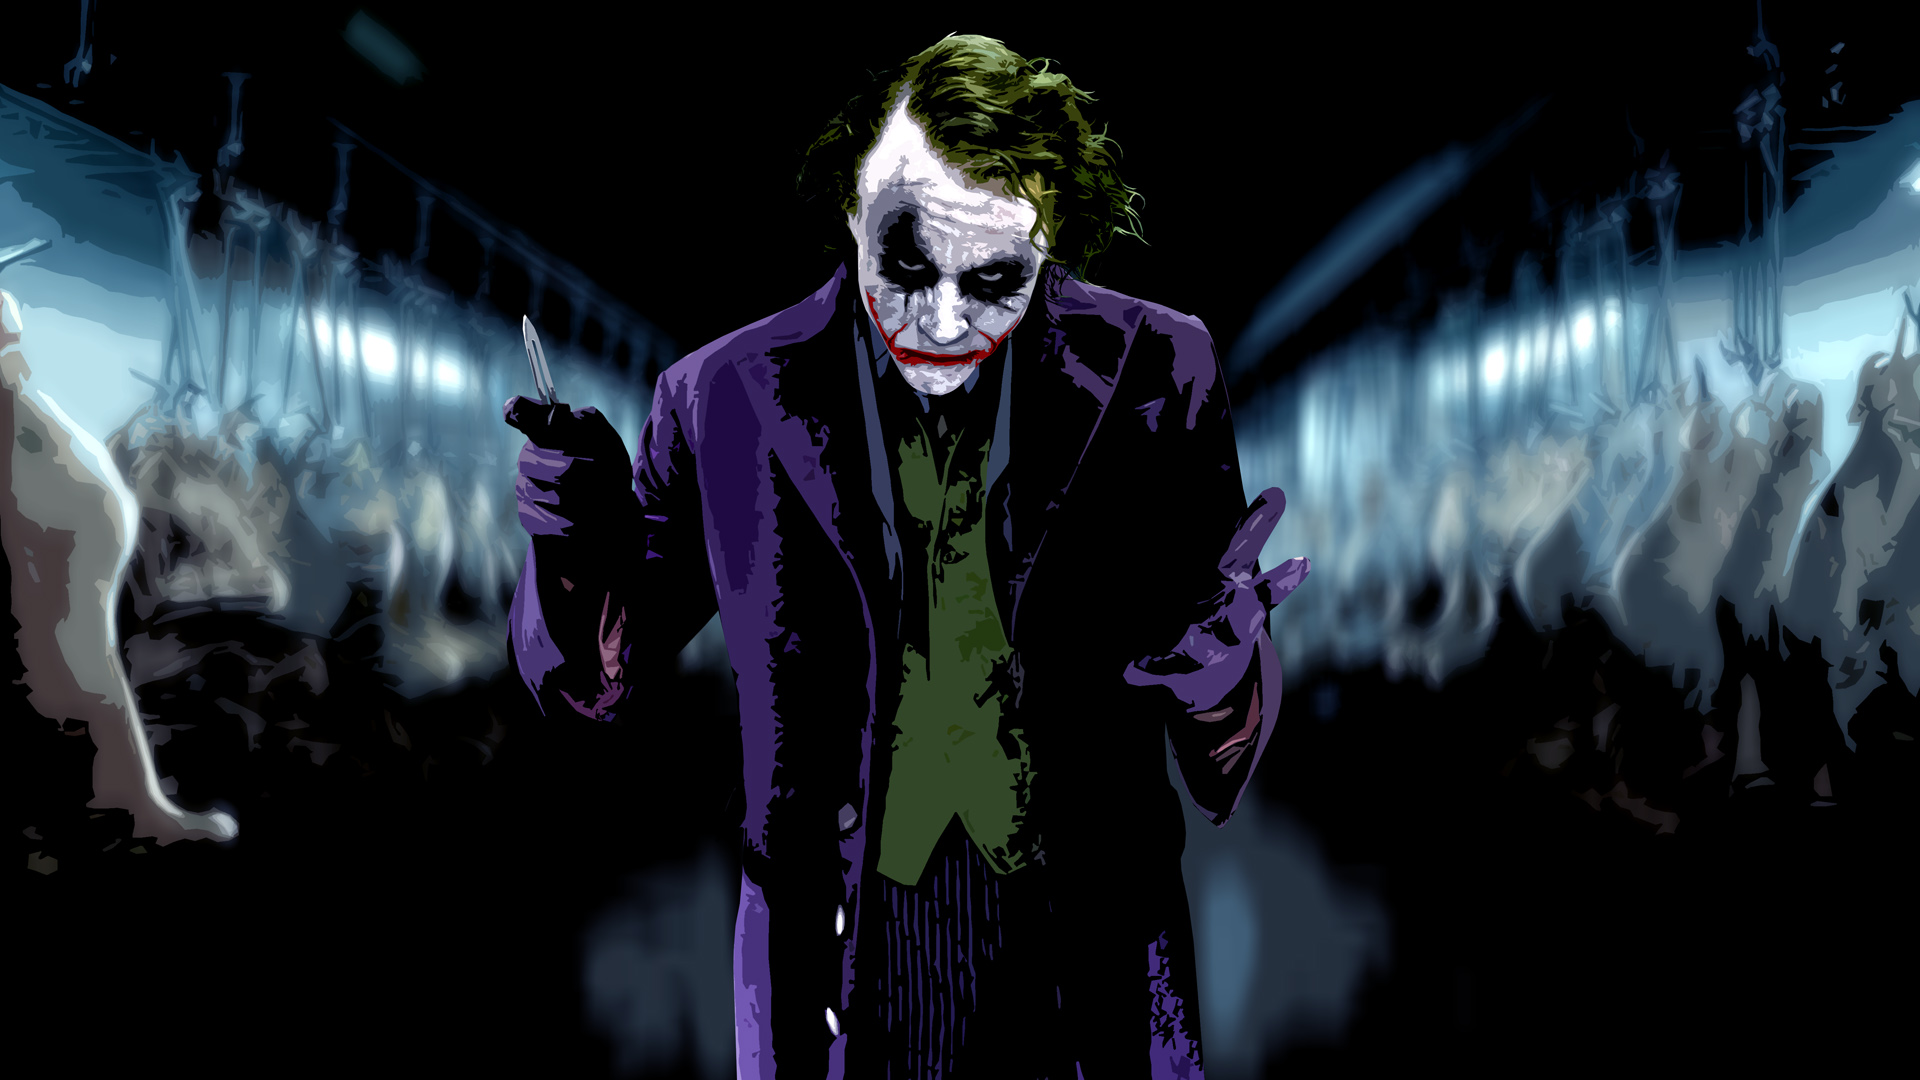 The Joker Heath Ledger Wallpaper - WallpaperSafari